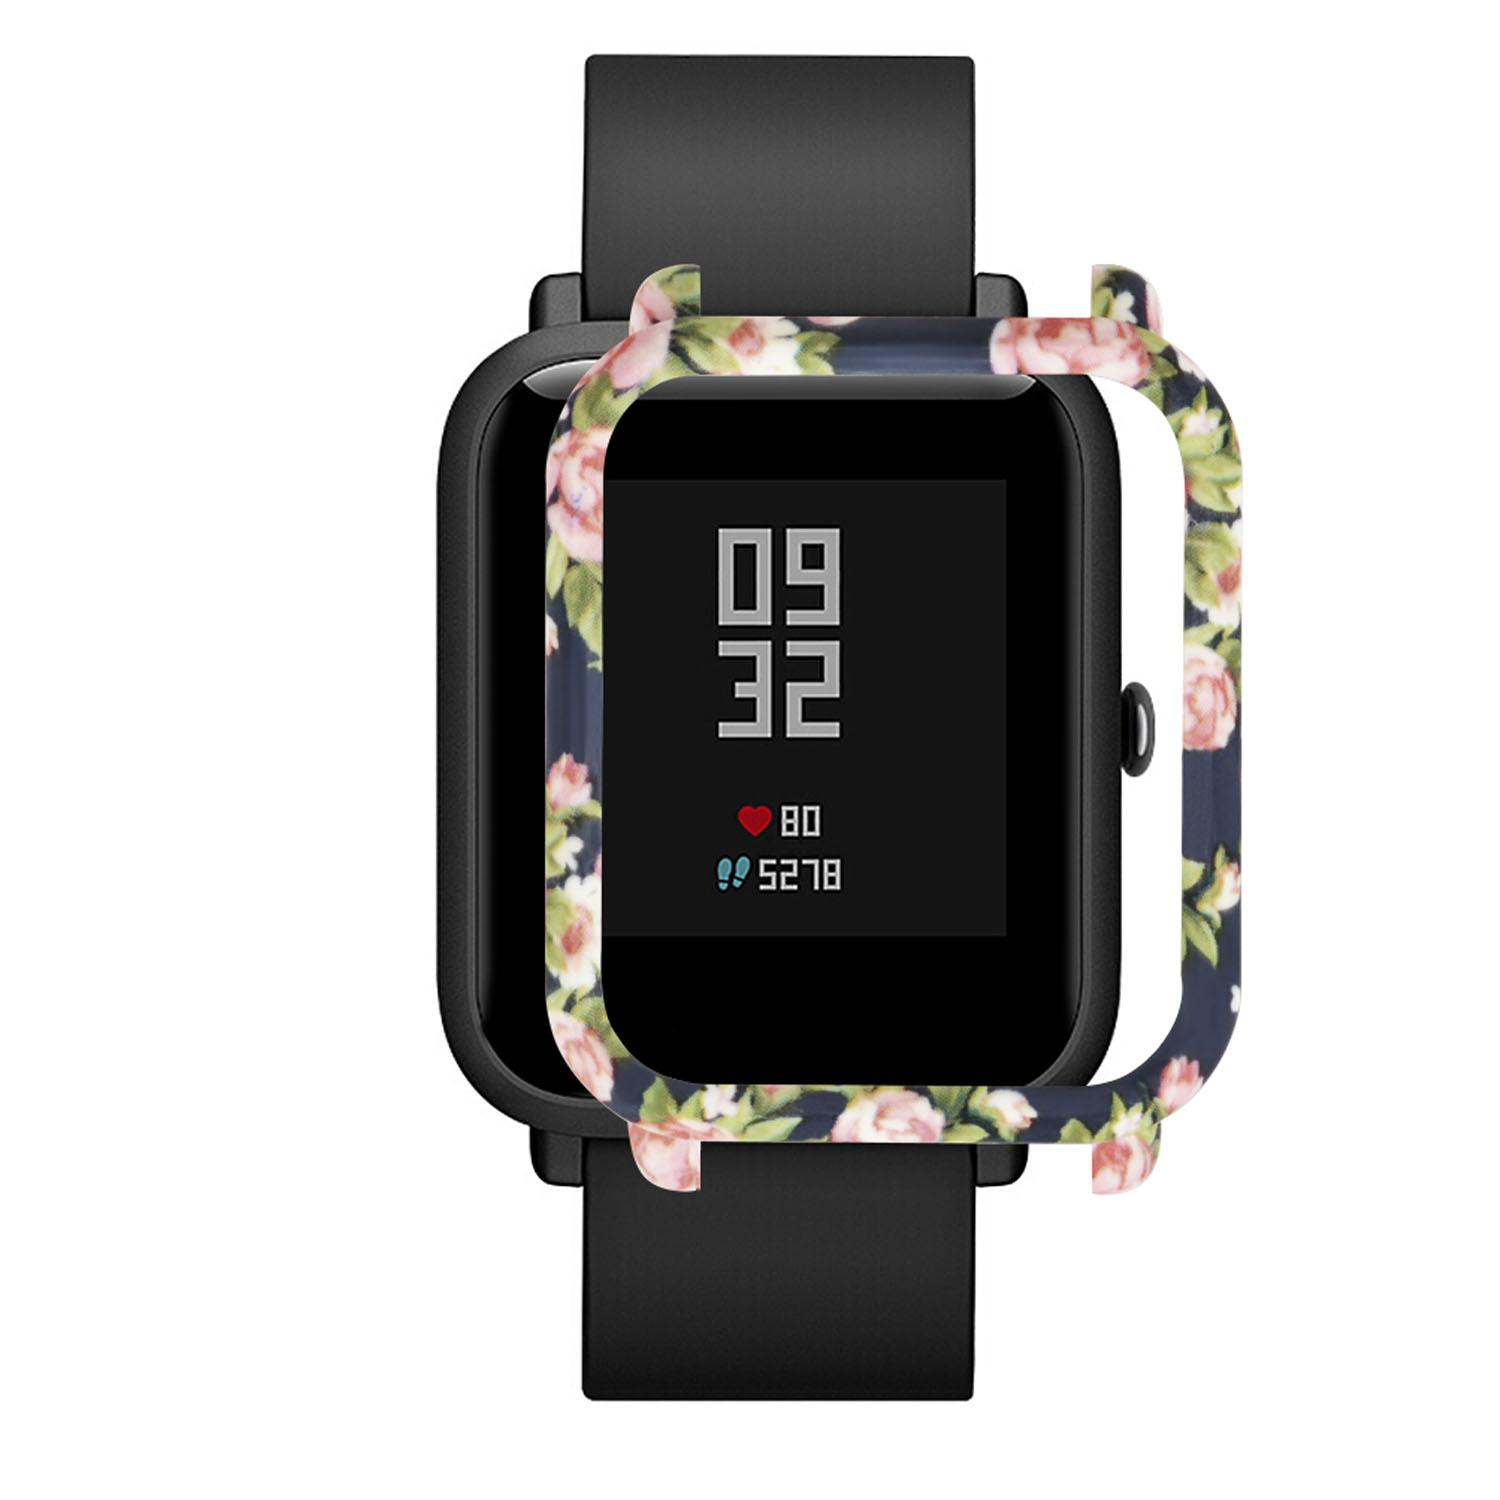 Lightweight Cool Patterned Protector Protective Frame Case Cover Shell Dust-proof Anti-scratch Accessories for Xiaomi Huami Amazfit Bip Youth Watch - intl